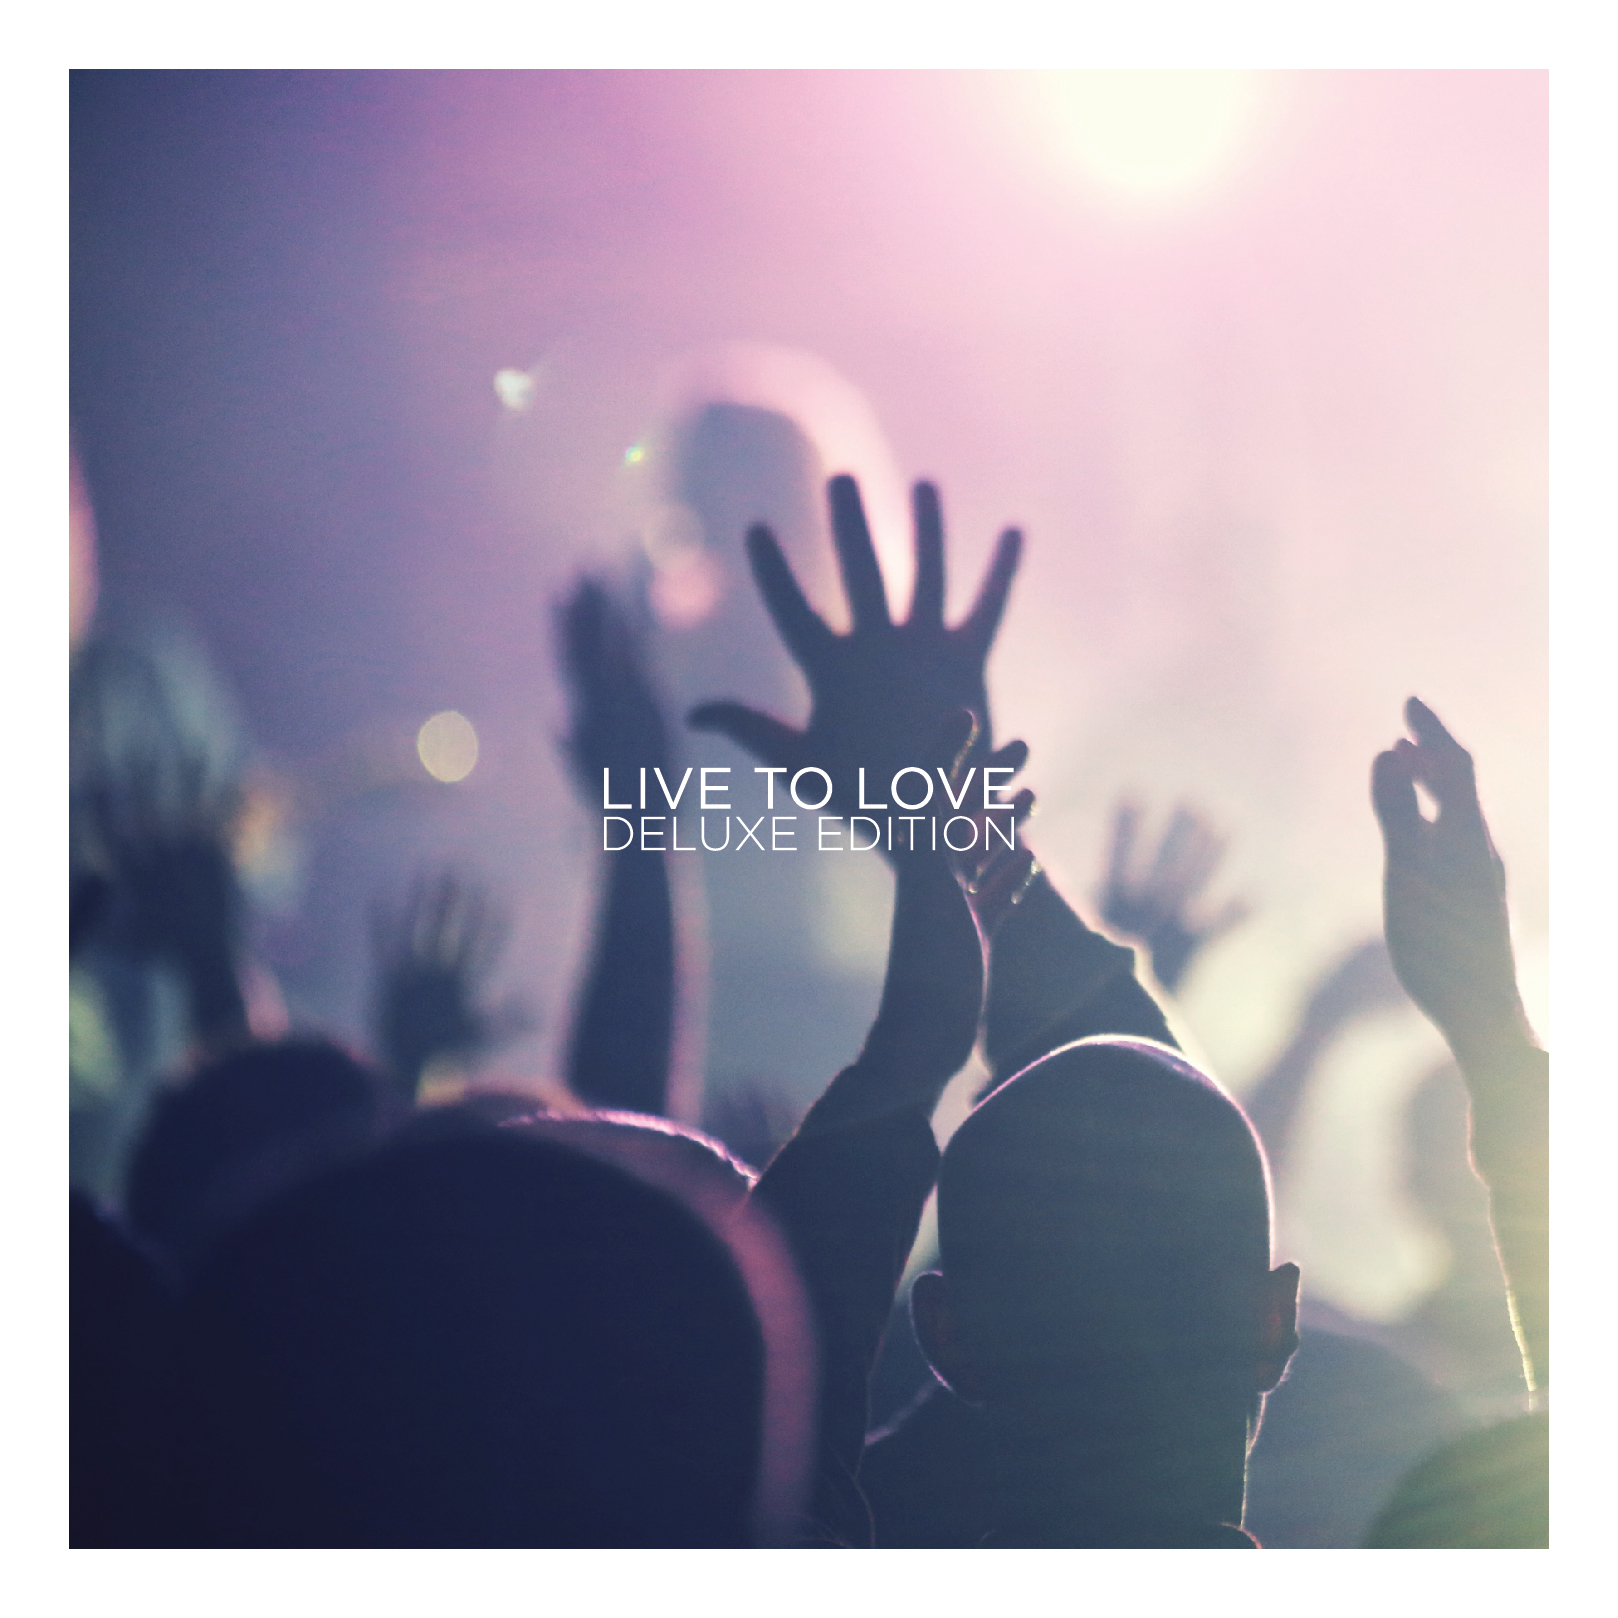 LIVE TO LOVE [DELUXE EDITION - 2014]